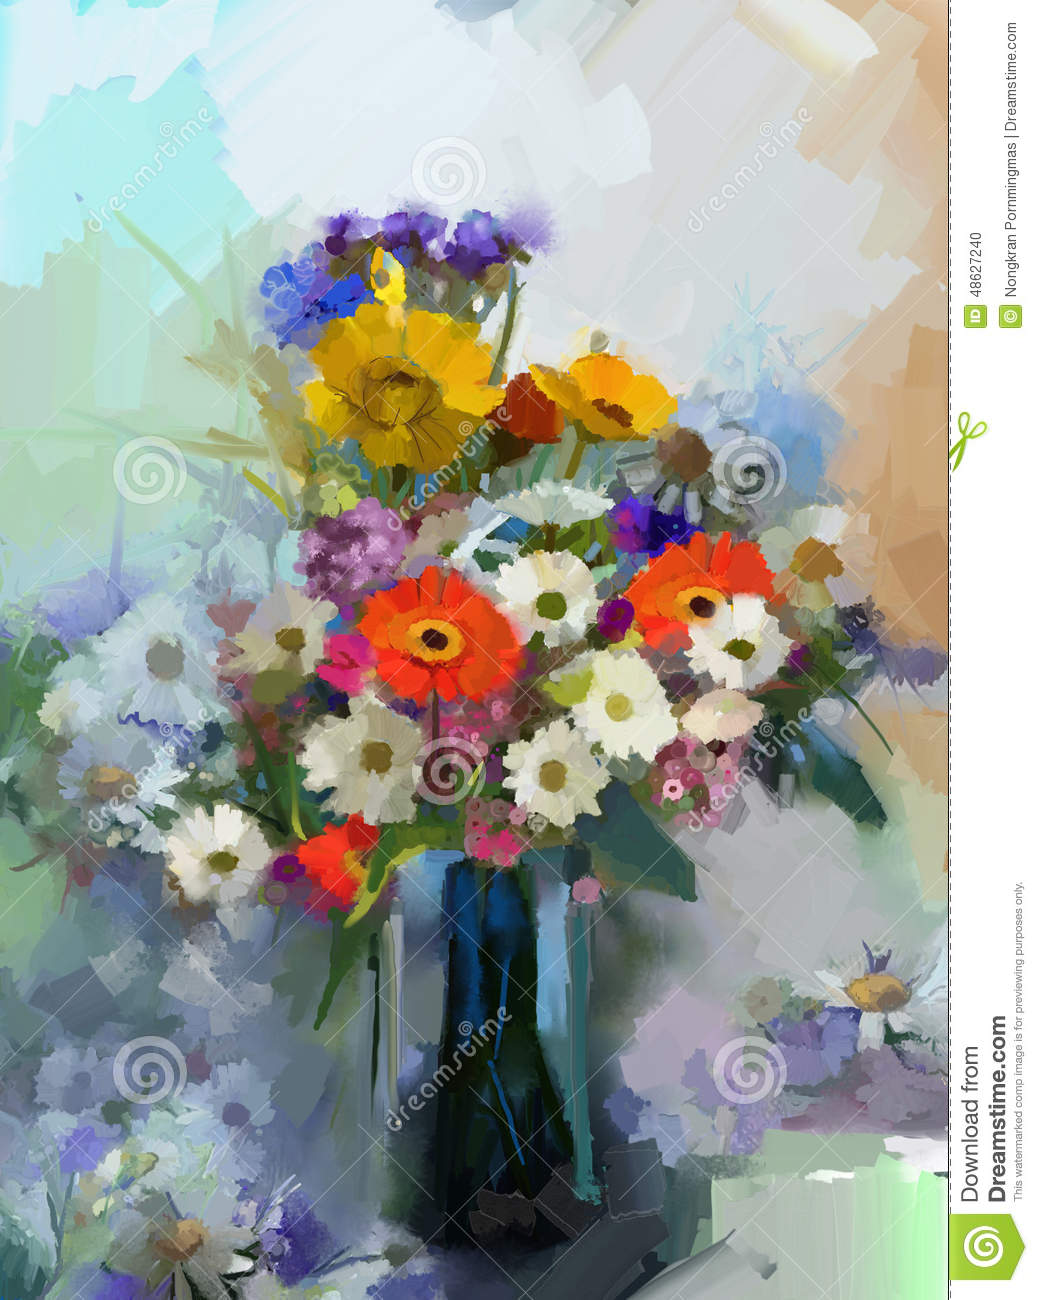 Oil painting vase with still life a bouquet of flowers stock oil painting vase with still life a bouquet of flowers izmirmasajfo